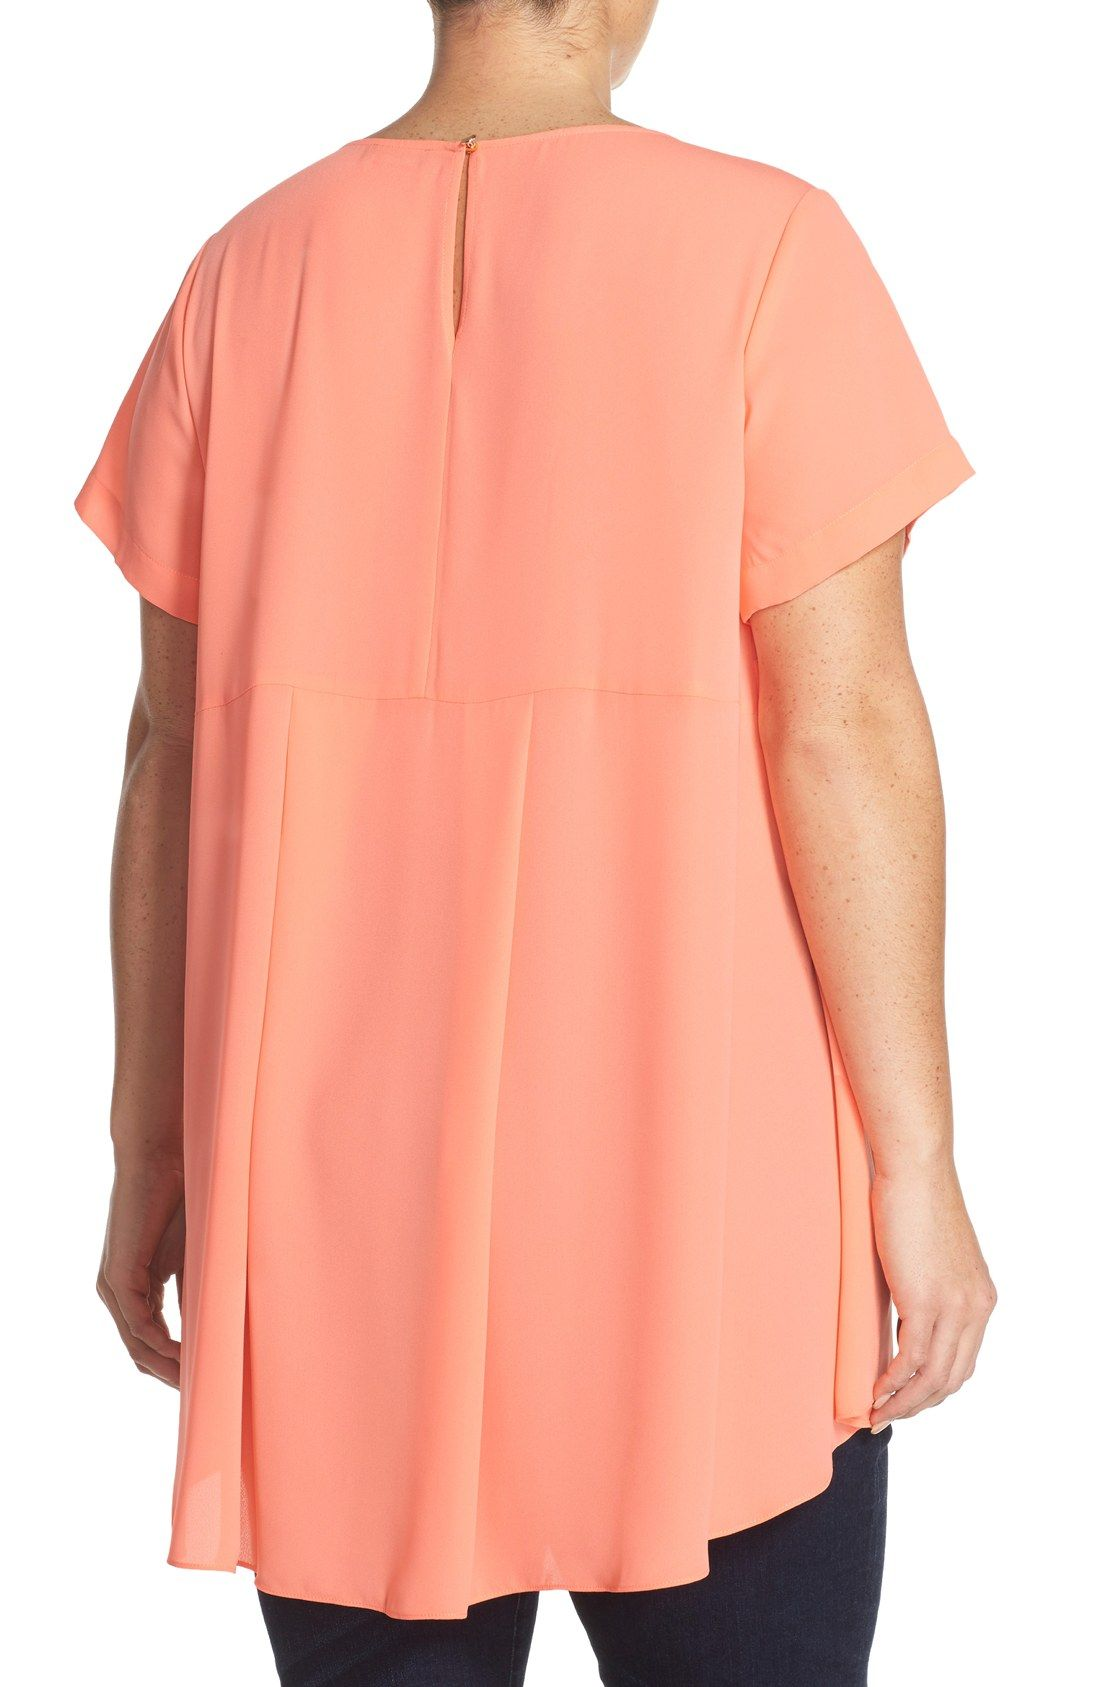 Vince Camuto Short Sleeve High/Low Blouse (Plus Size)